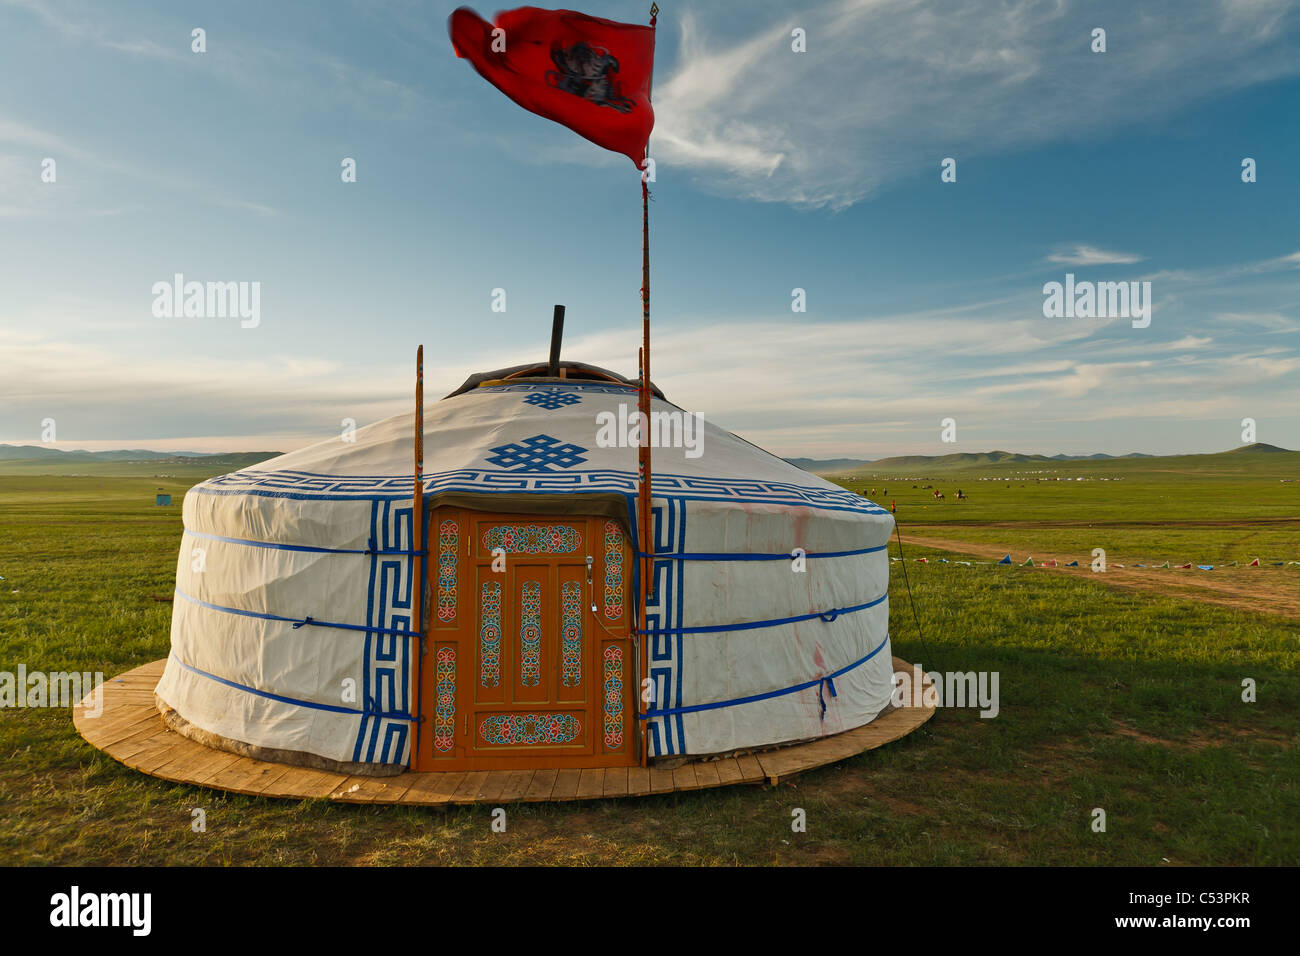 Traditional ger tent home of Mongolian nomads on the grass plains of the steppe - Stock Image